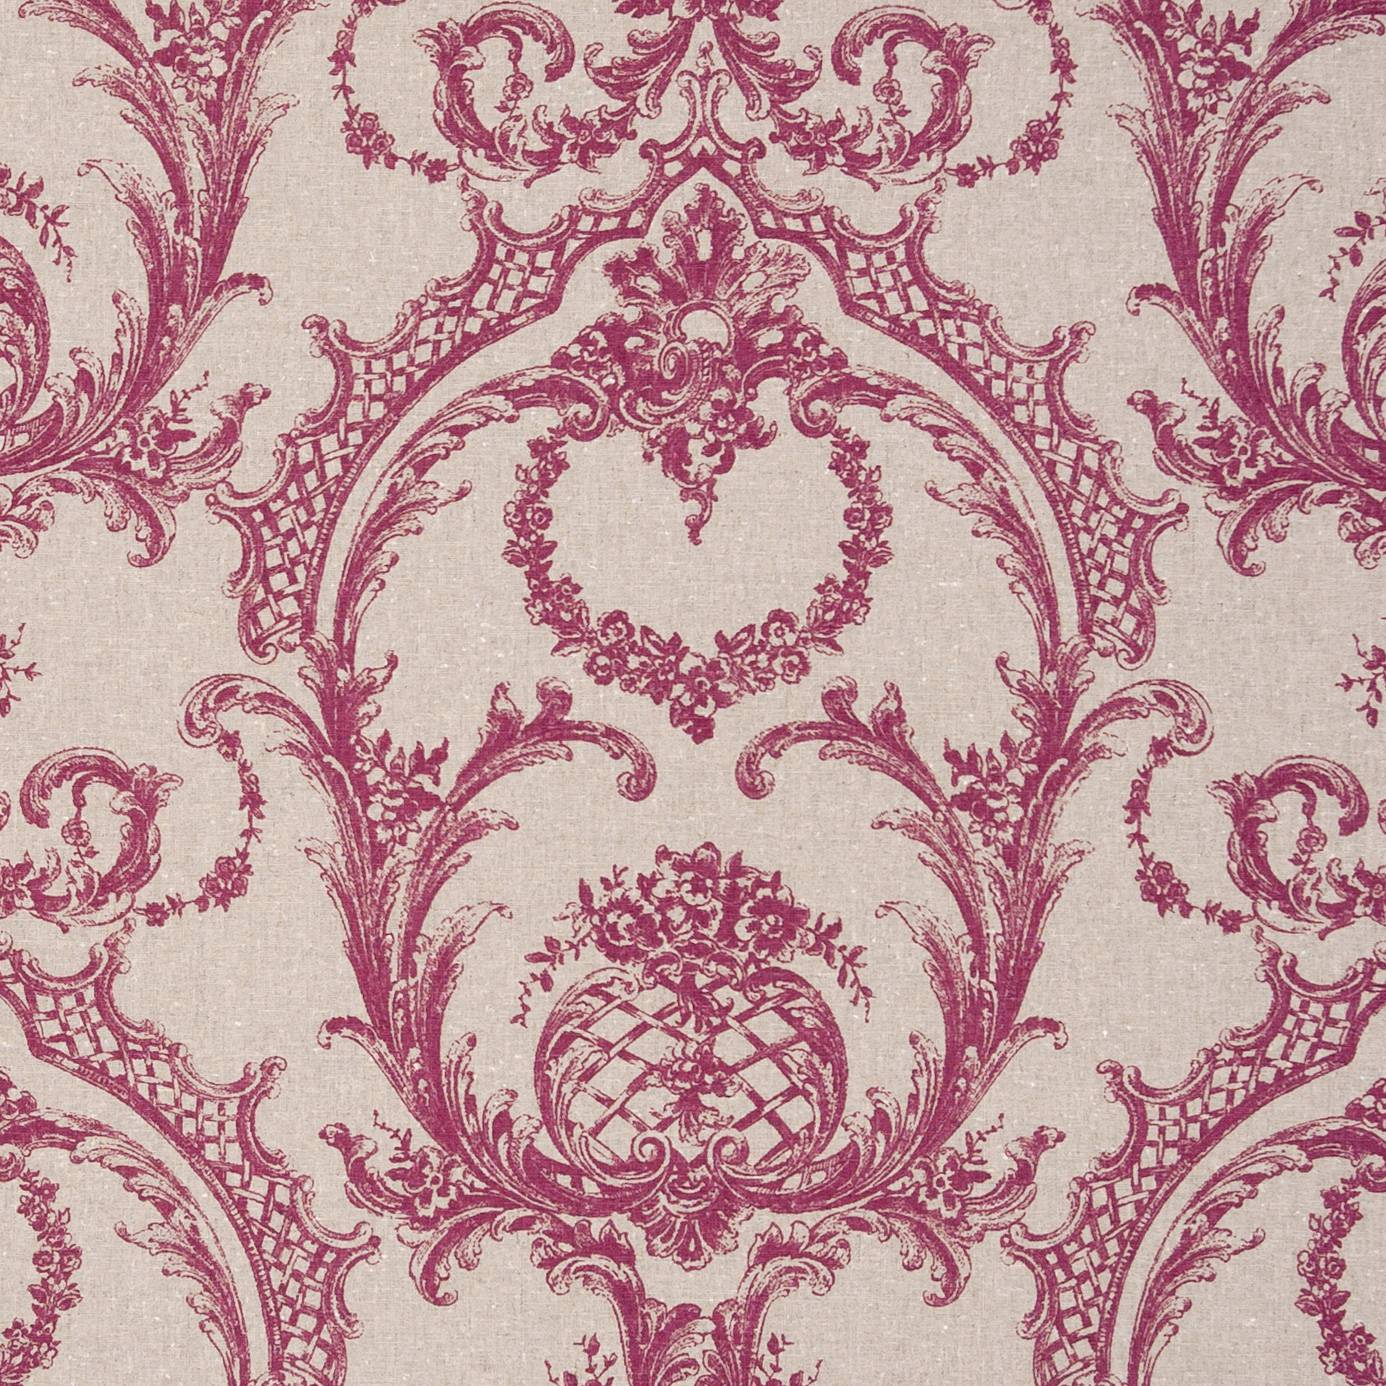 Lilou Fabric Pink F0769 02 Clarke Amp Clarke Fougeres